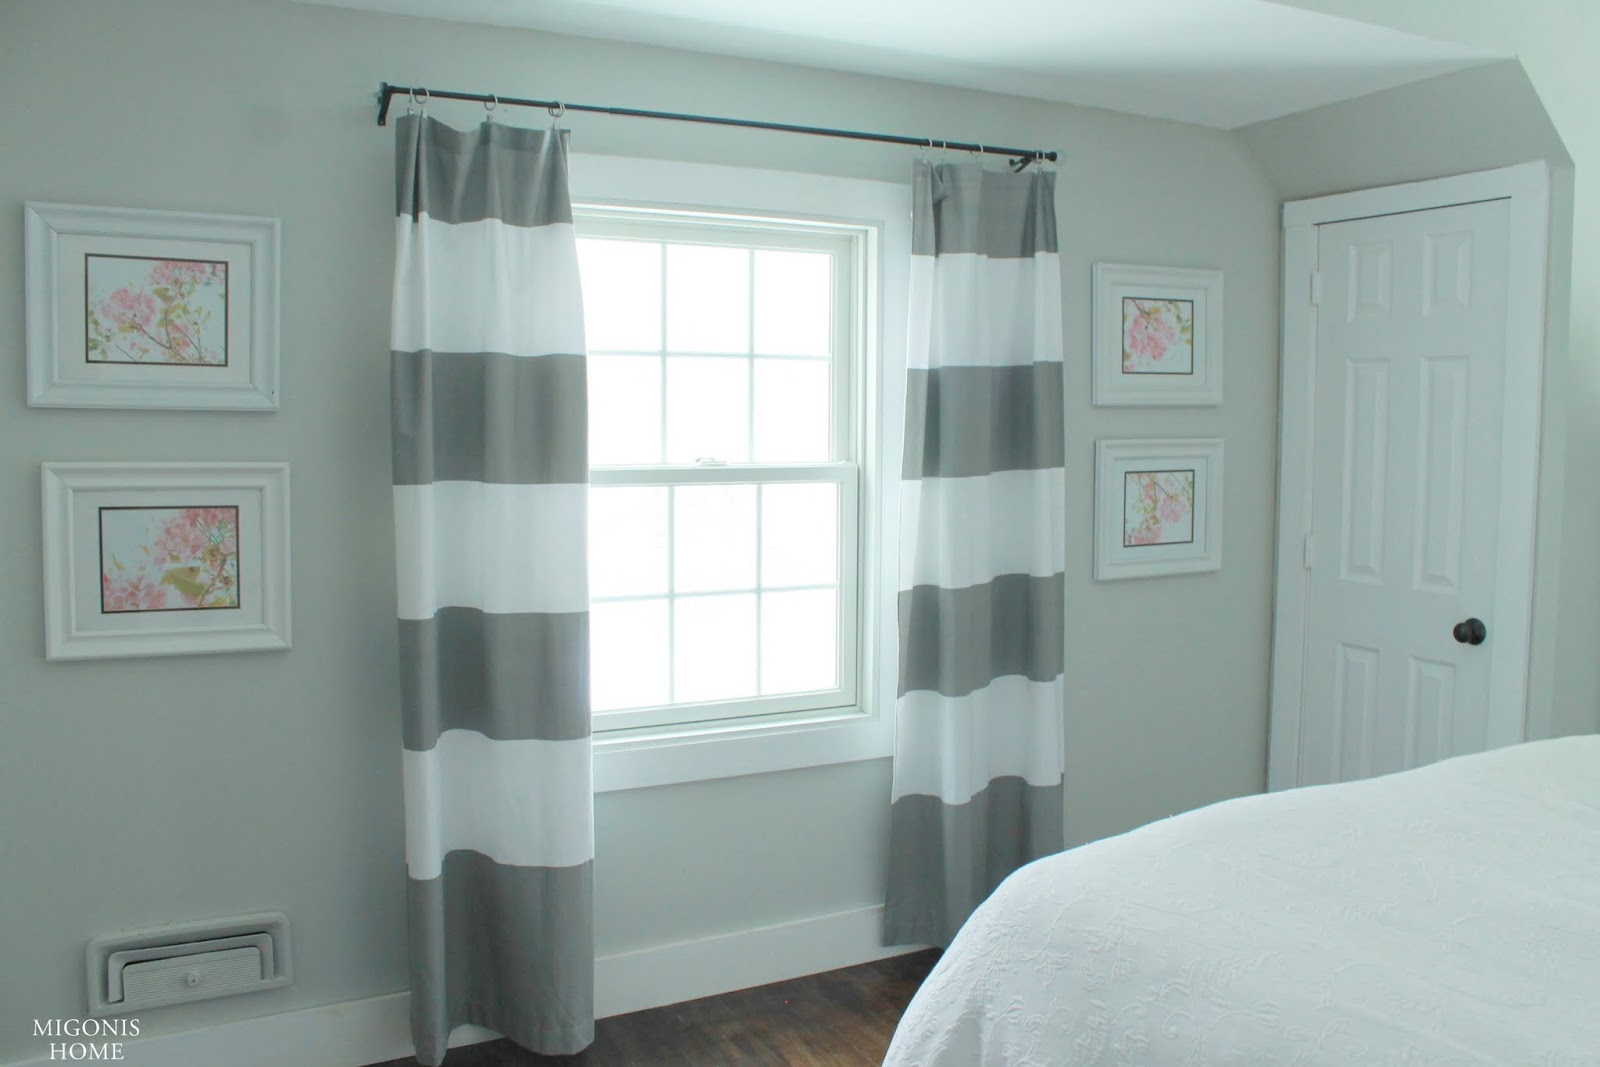 Curtains: West Elm shower curtains (post here )</p> <div style='display:none;'> <div class='vcard' id='hcard-'> <span itemprop='description'><span itemprop='itemreviewed'>Aly And Aj Living Room Tour</span></span> <time itemprop='dtreviewed'>2015-05-15T01:00:00-07:00</time> Rating: <span itemprop='rating'>4.5</span> Diposkan Oleh: <span class='fn n'> <span class='given-name' itemprop='reviewer'>Cindy Claudia</span> </span> </div> </div> <div style='clear: both;'></div> </div> <div class='post-footer'> <div class='post-footer-line post-footer-line-1'> <div class='iklan2'> </div> <div id='share-button-bamzstyle'> <p>Share ke:</p> <a class='facebook' href='http://www.facebook.com/sharer.php?u=http://itisawomansworld-greece.blogspot.com/2015/05/aly-and-aj-living-room-tour.html&title=Aly And Aj Living Room Tour' rel='nofollow' style='background:#3b5998;' target='_blank' title='Facebook'>Facebook</a> <a class='facebook' href='https://plus.google.com/share?url=http://itisawomansworld-greece.blogspot.com/2015/05/aly-and-aj-living-room-tour.html' rel='nofollow' style='background:#c0361a;' target='_blank' title='Google+'>Google+</a> <a class='twitter' data-text='Aly And Aj Living Room Tour' data-url='http://itisawomansworld-greece.blogspot.com/2015/05/aly-and-aj-living-room-tour.html' href='http://twitter.com/share' rel='nofollow' style='background:#4099ff;' target='_blank' title='Twitter'>Twitter</a> <div class='clear'></div> </div> <div class='terkait'> <h3>Related Photos of Aly And Aj Living Room Tour :</h3> <script src='/feeds/posts/default/-/aj?alt=json-in-script&callback=relpostimgcuplik&max-results=50' type='text/javascript'></script> <script src='/feeds/posts/default/-/aly?alt=json-in-script&callback=relpostimgcuplik&max-results=50' type='text/javascript'></script> <script src='/feeds/posts/default/-/and?alt=json-in-script&callback=relpostimgcuplik&max-results=50' type='text/javascript'></script> <script src='/feeds/posts/default/-/living?alt=json-in-script&callback=re